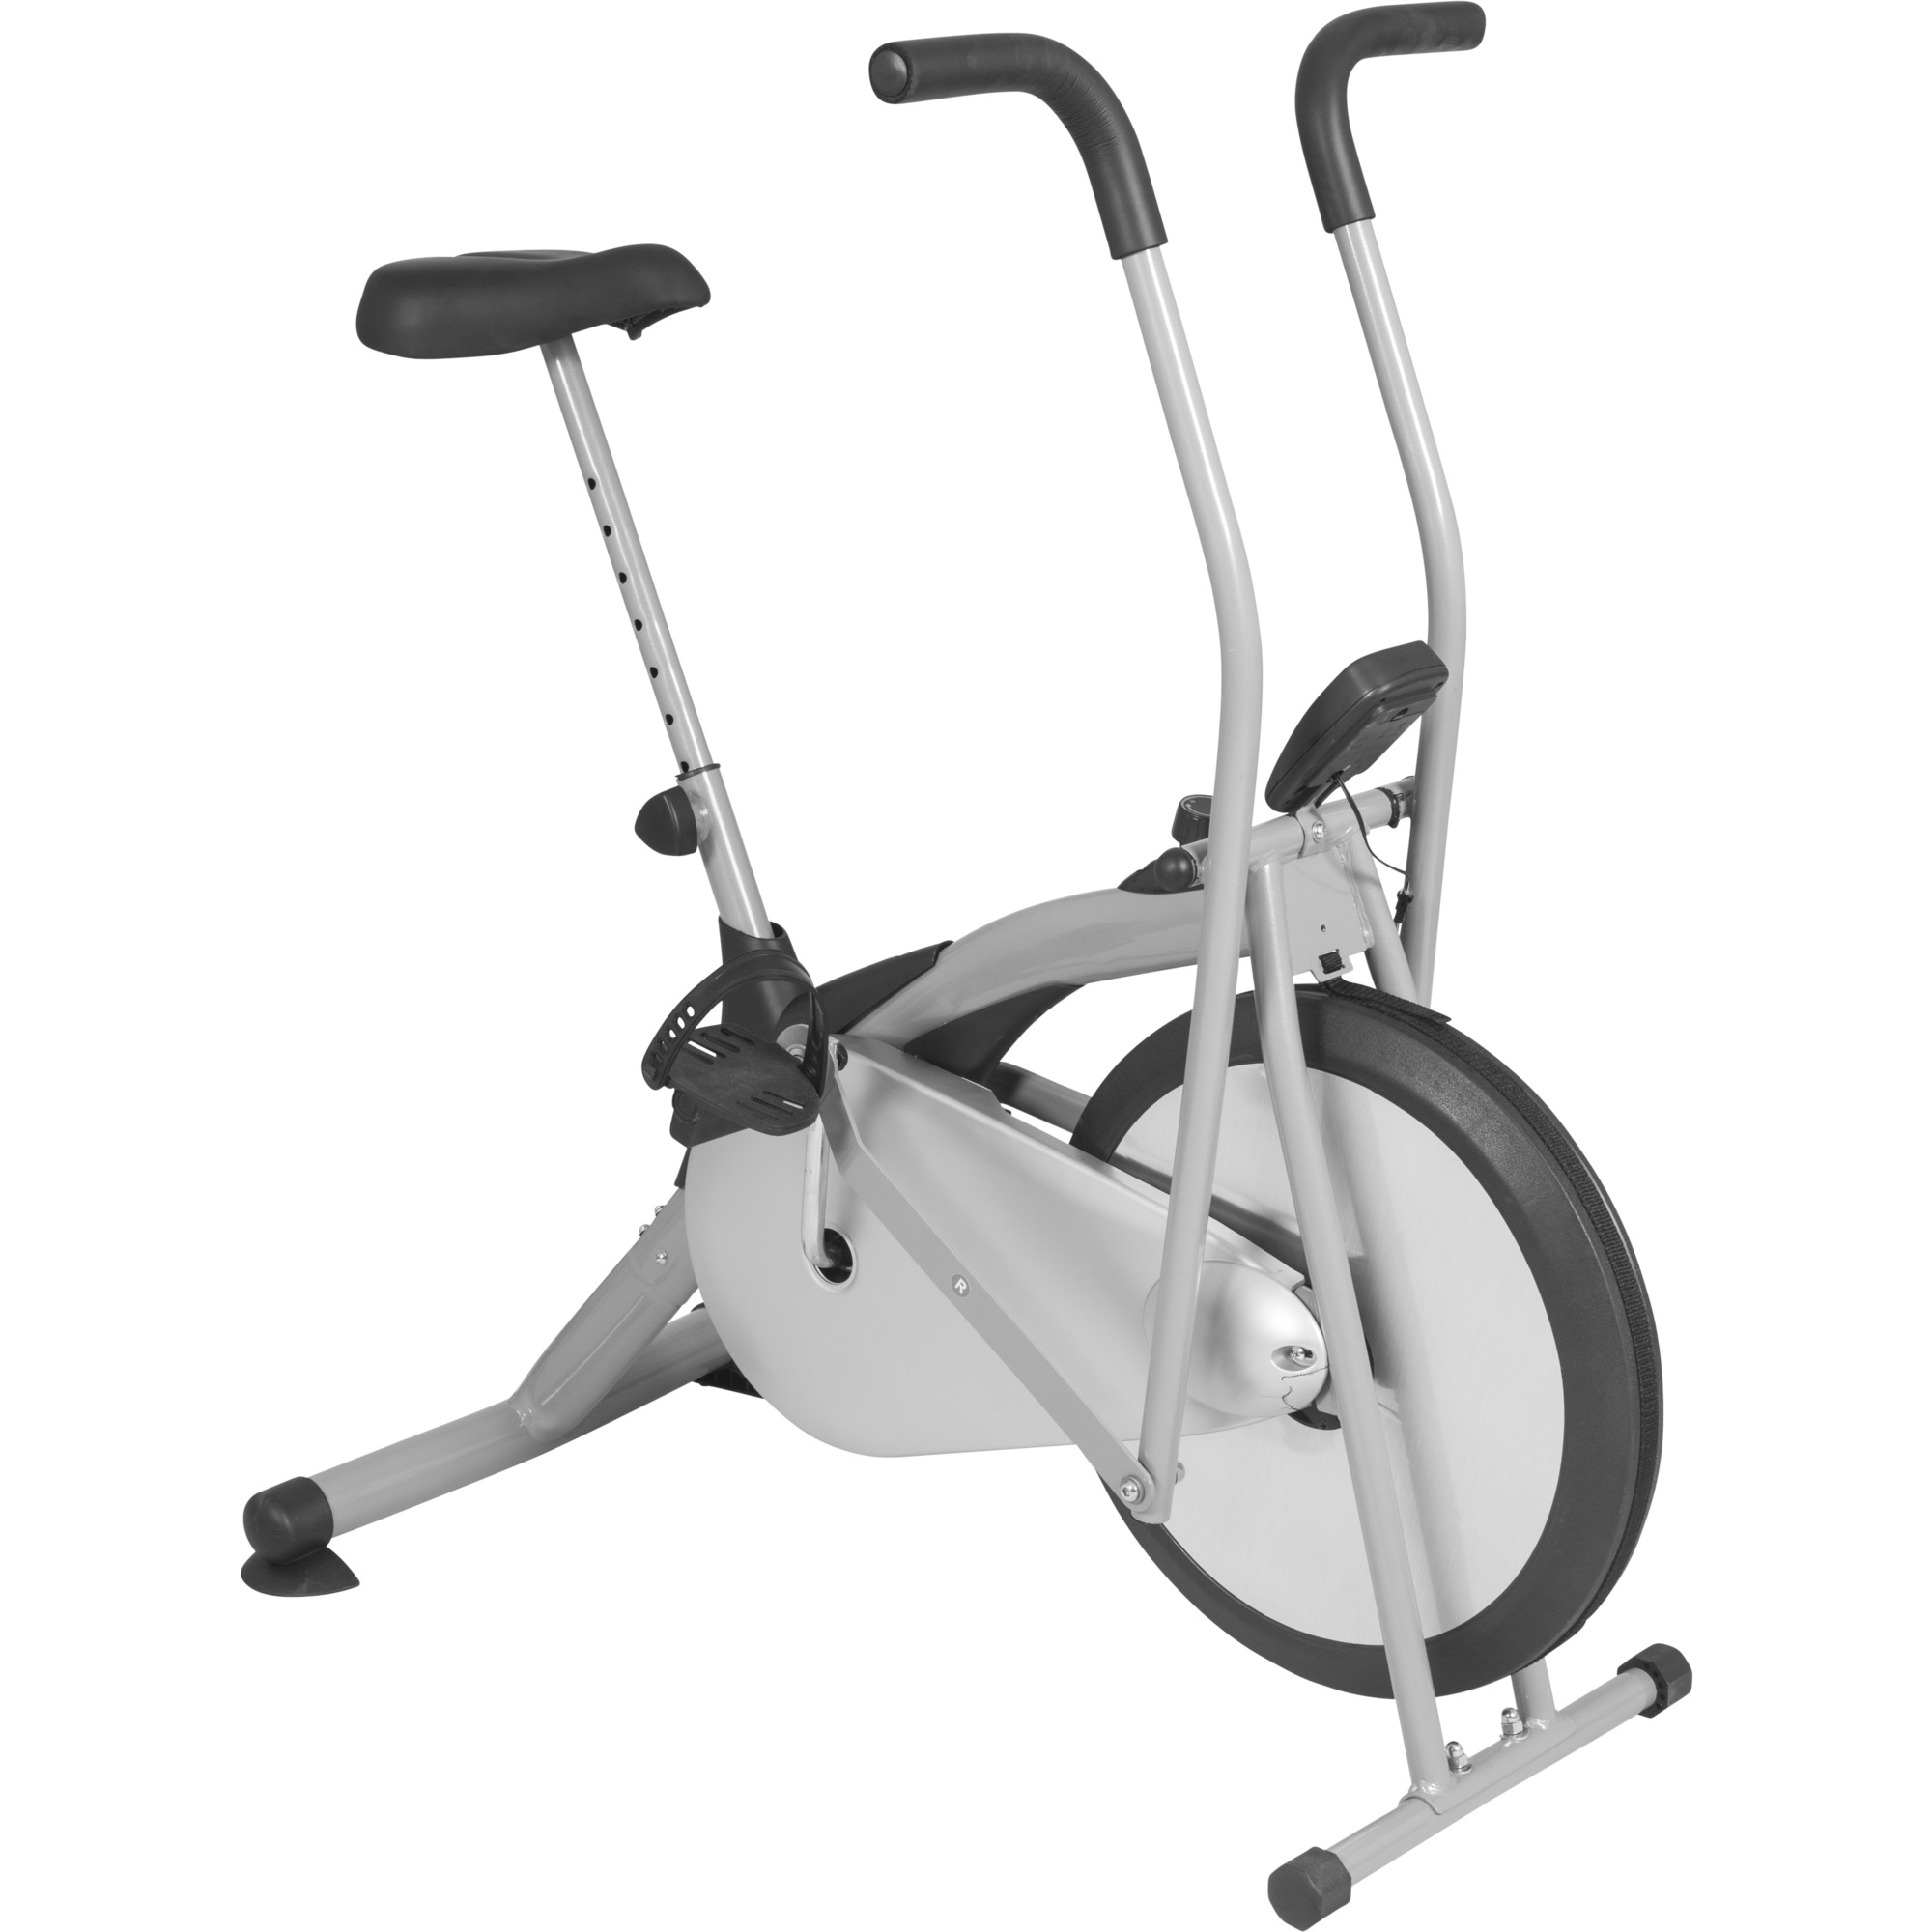 V lo elliptique gorilla sports 2 en 1 10000527 - Velo elliptique cardio ...